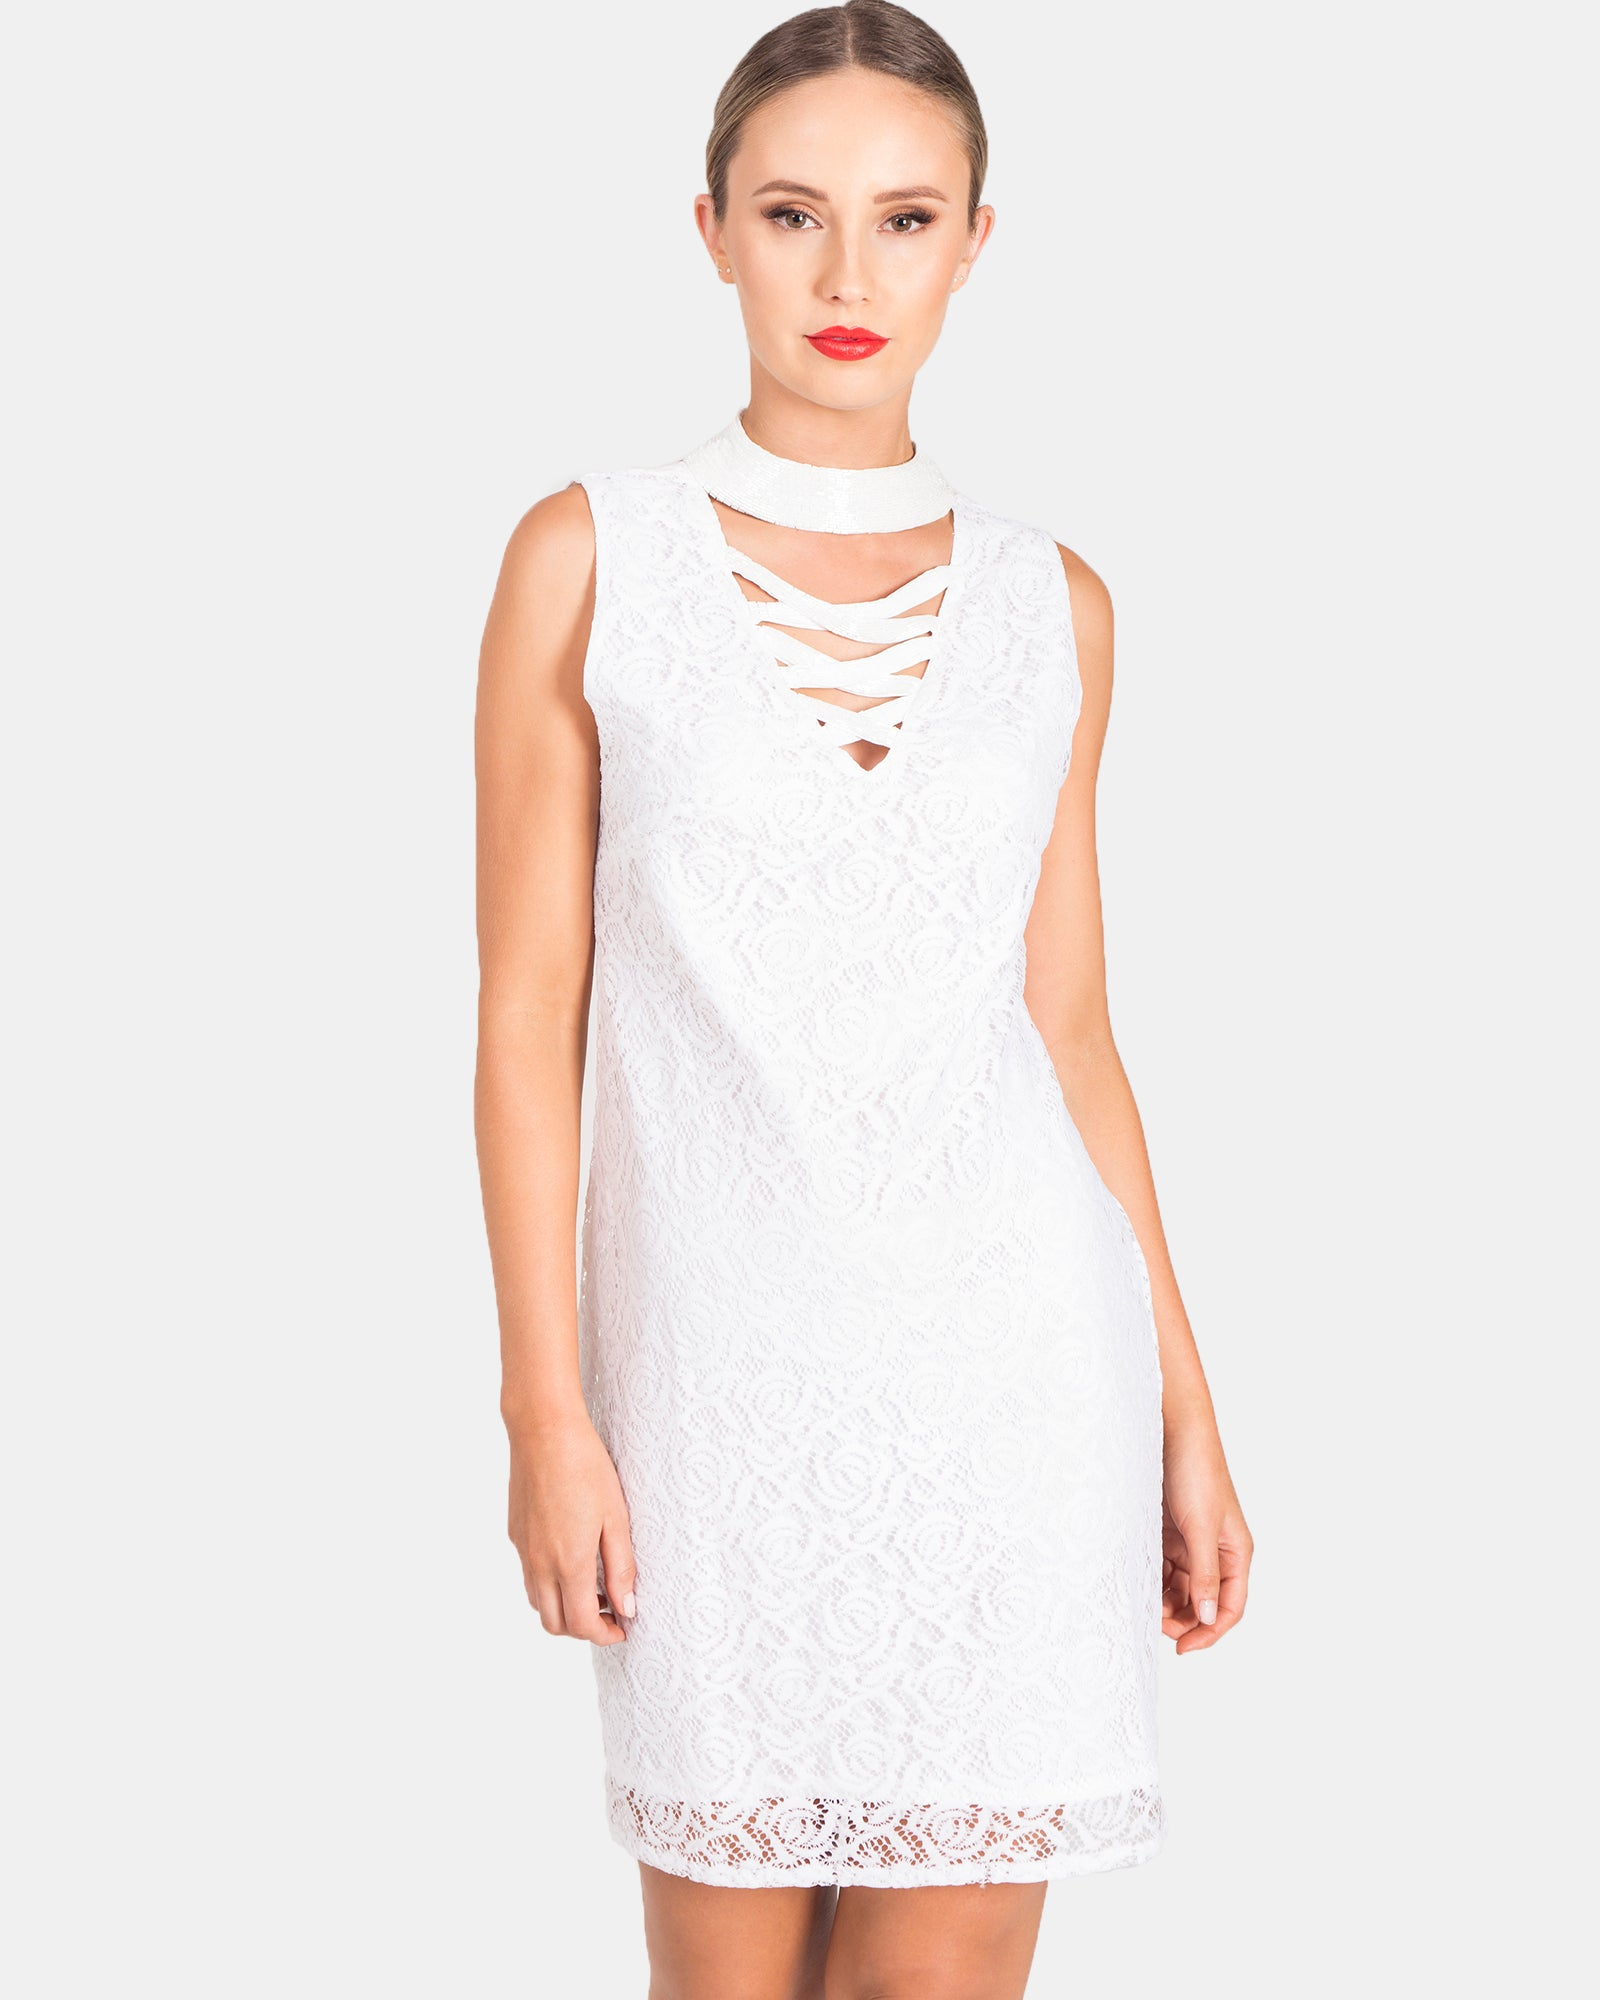 BEADED CHOKER LACE DRESS